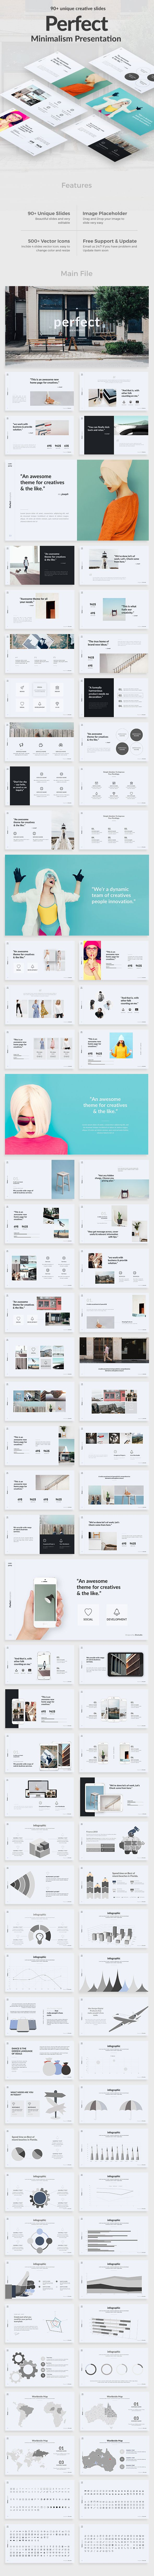 Perfect Project Minimal Powerpoint Template